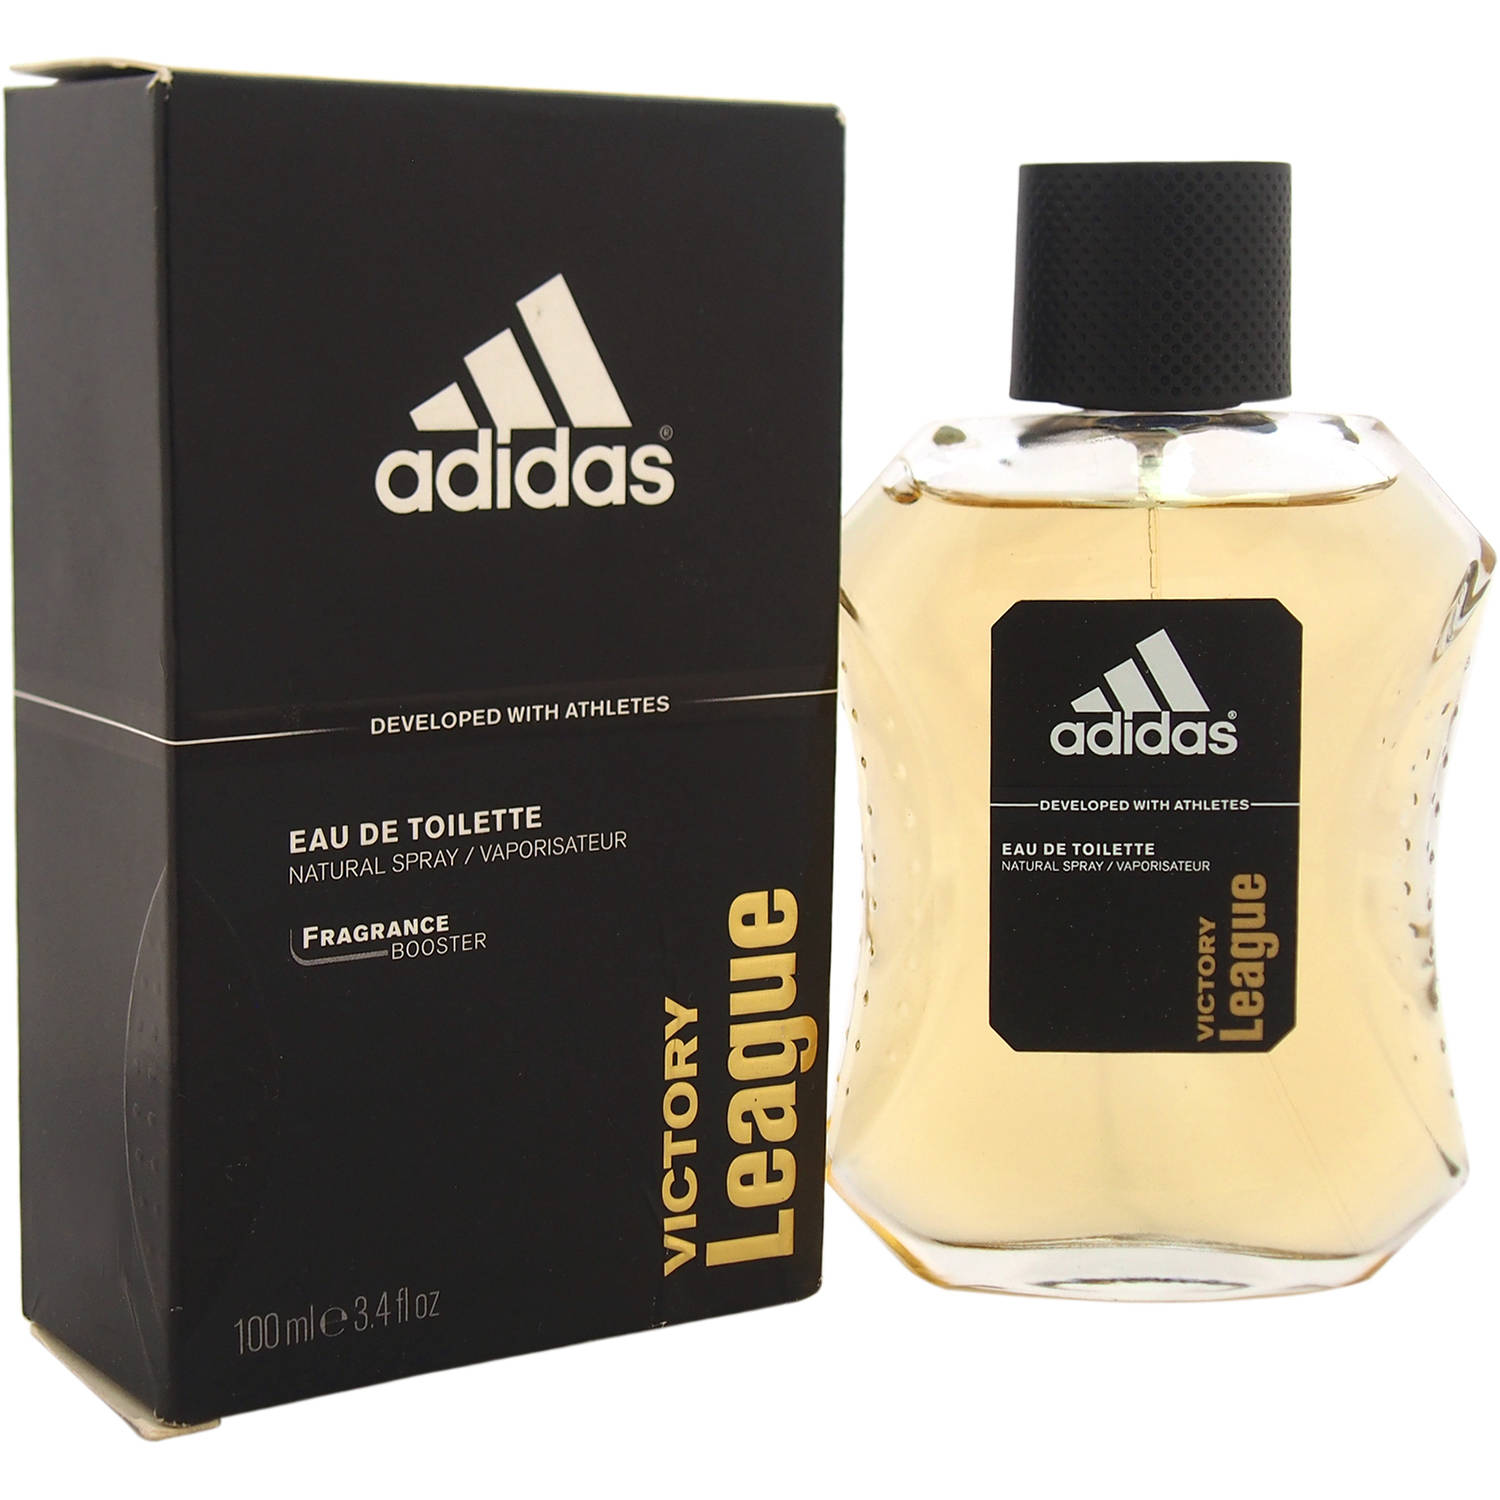 Adidas Victory League for Men Eau de Toilette Spray, 3.4 oz